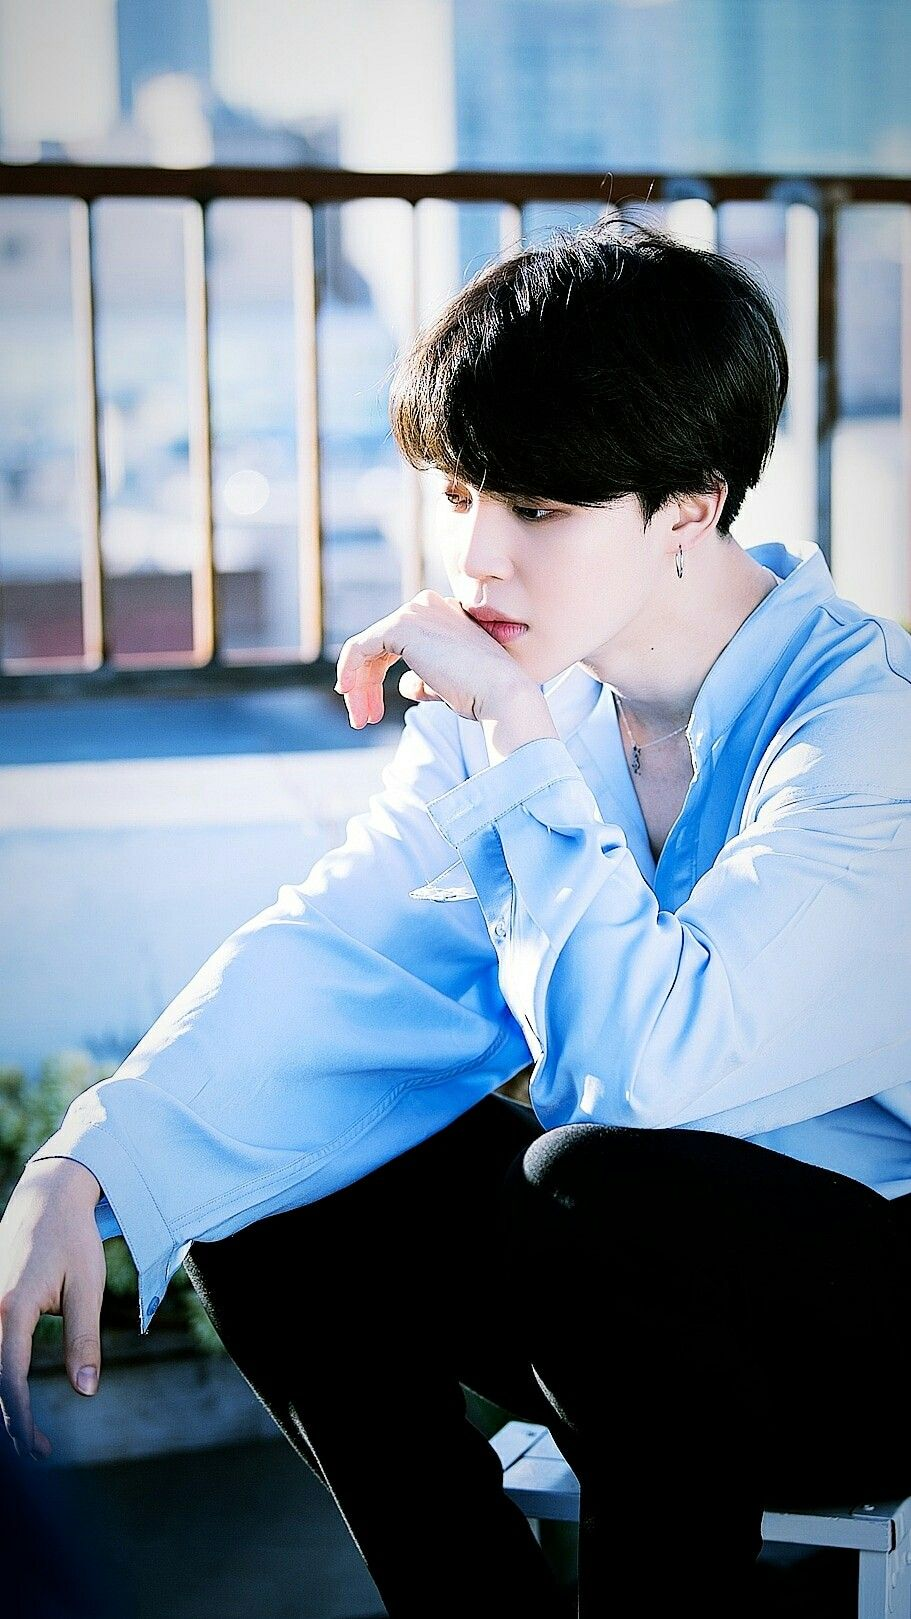 Bts Edits Bts Wallpapers Bts X Dispatch Bts 5th Anniversary Pls Make Sure To Follow Me Before U Save It Find More On My Account Bts Jimin